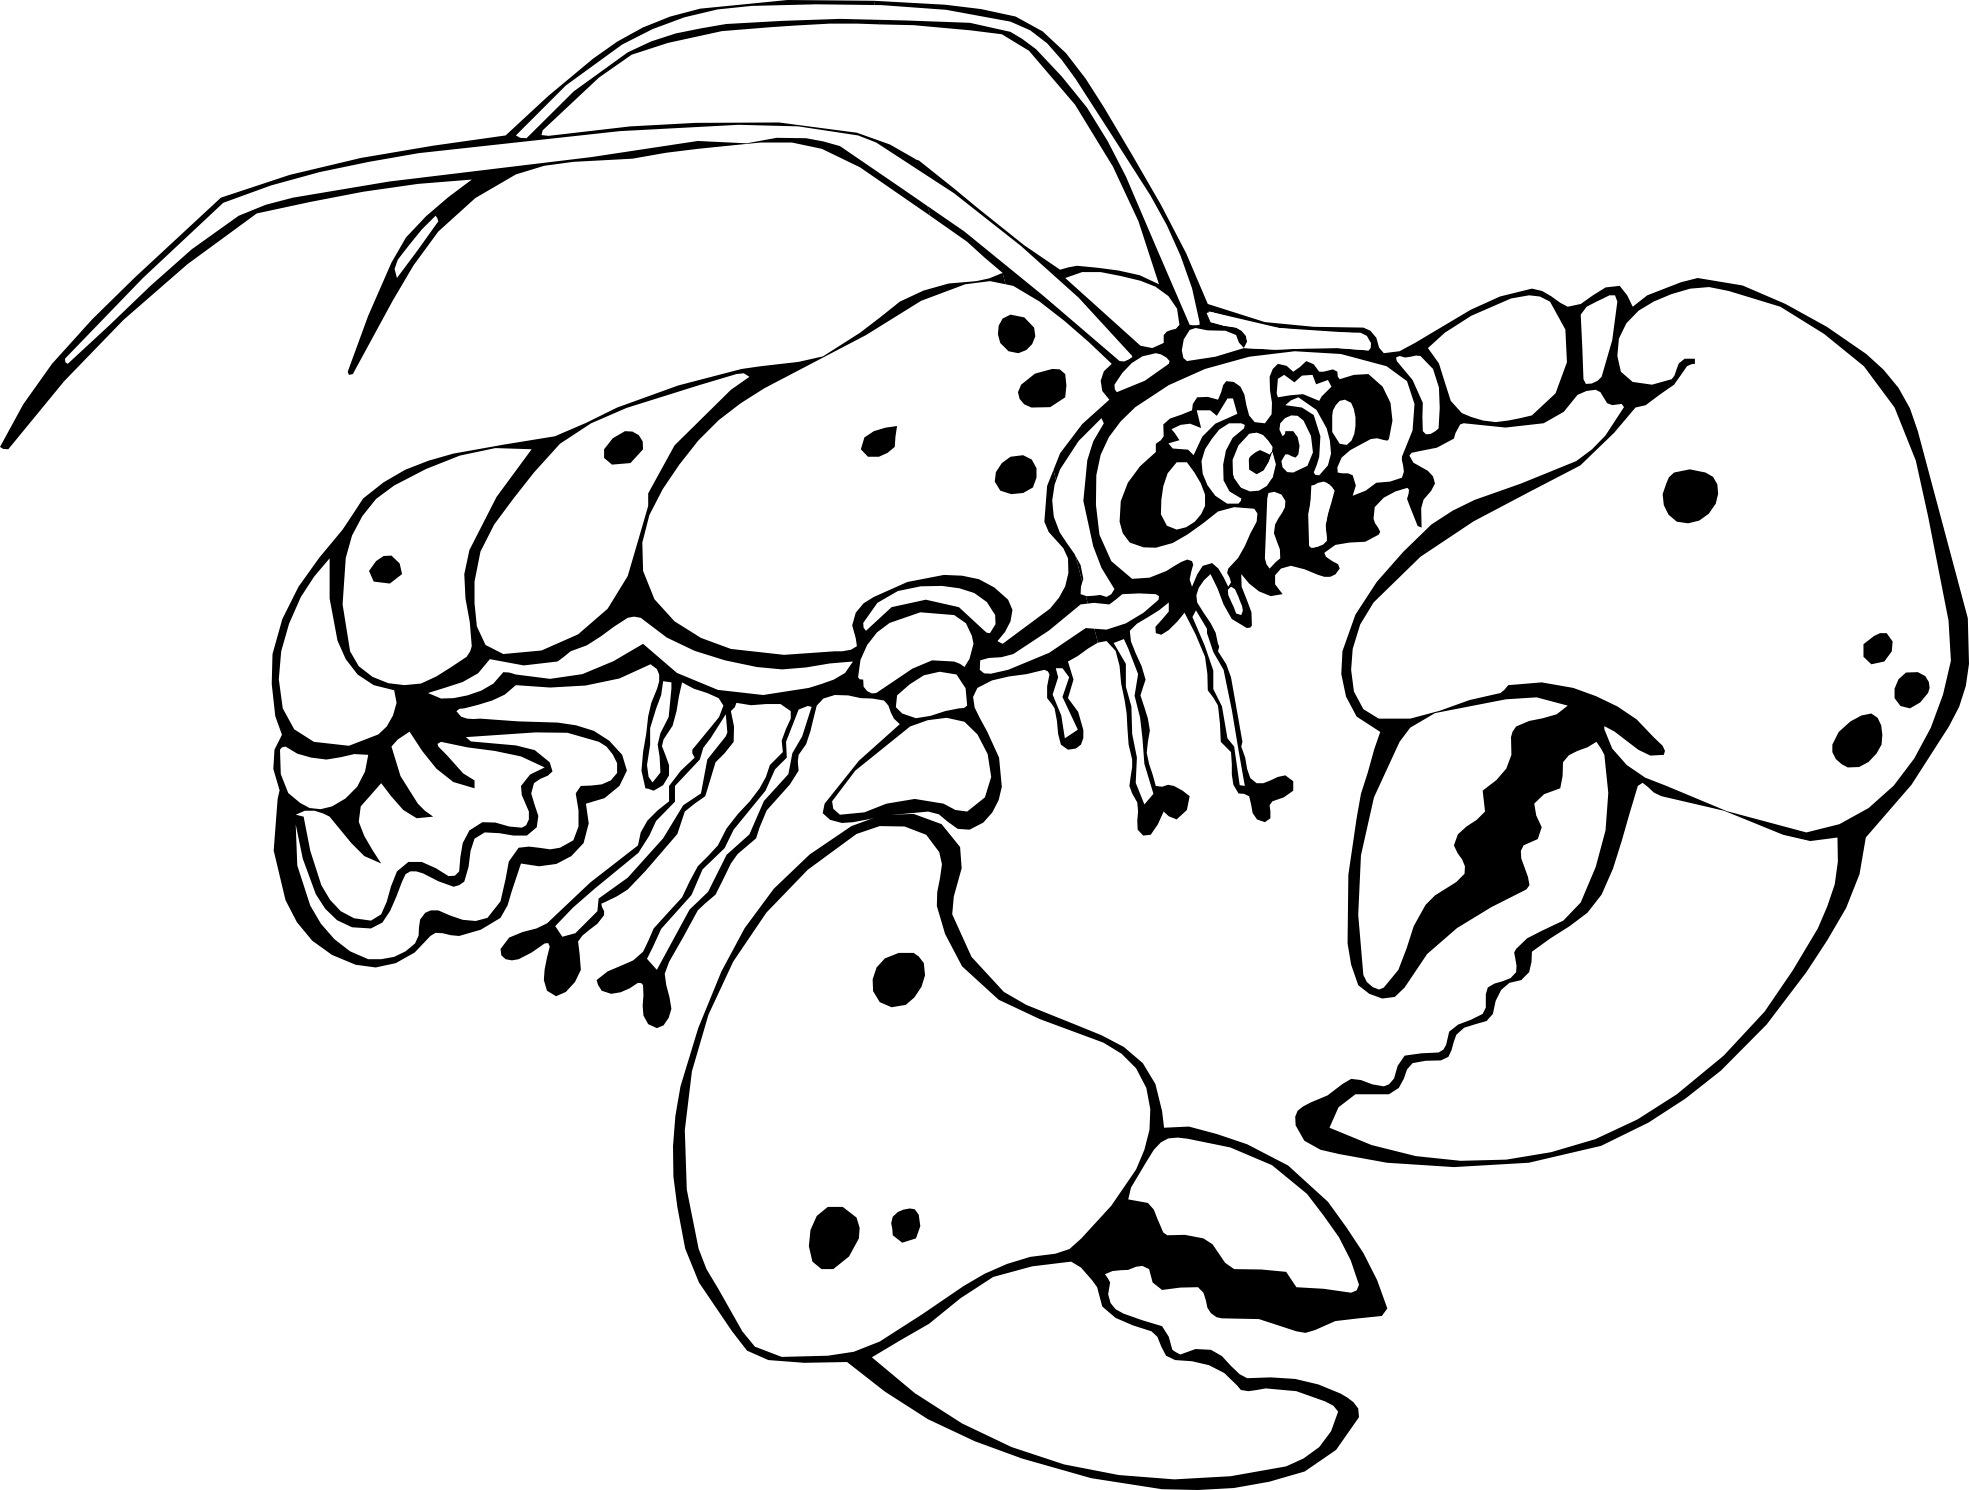 Lobster Png Of A Black And White Crayfish Veran